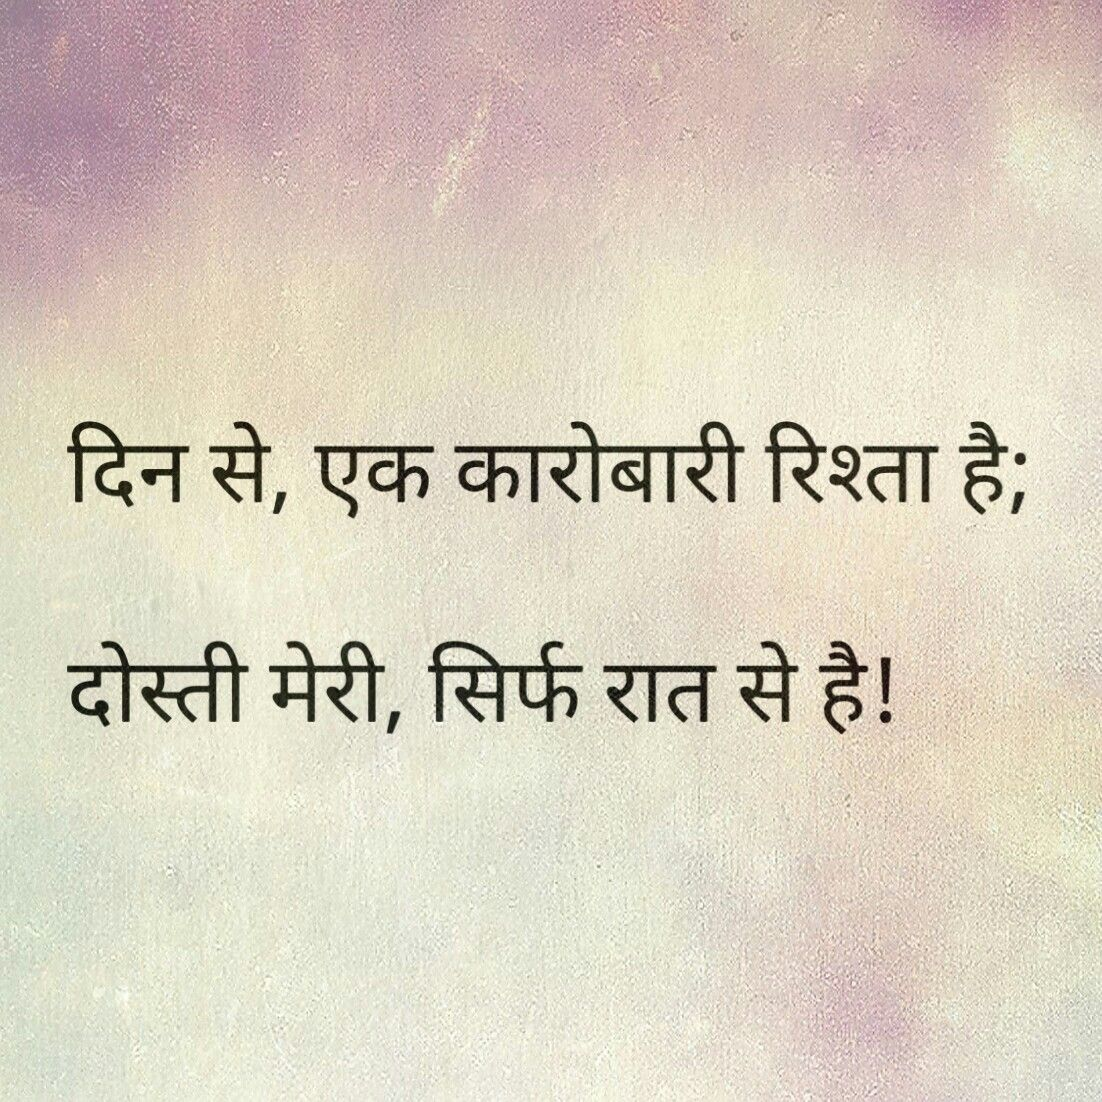 Gulzar Best Shayari So Far - Google Search